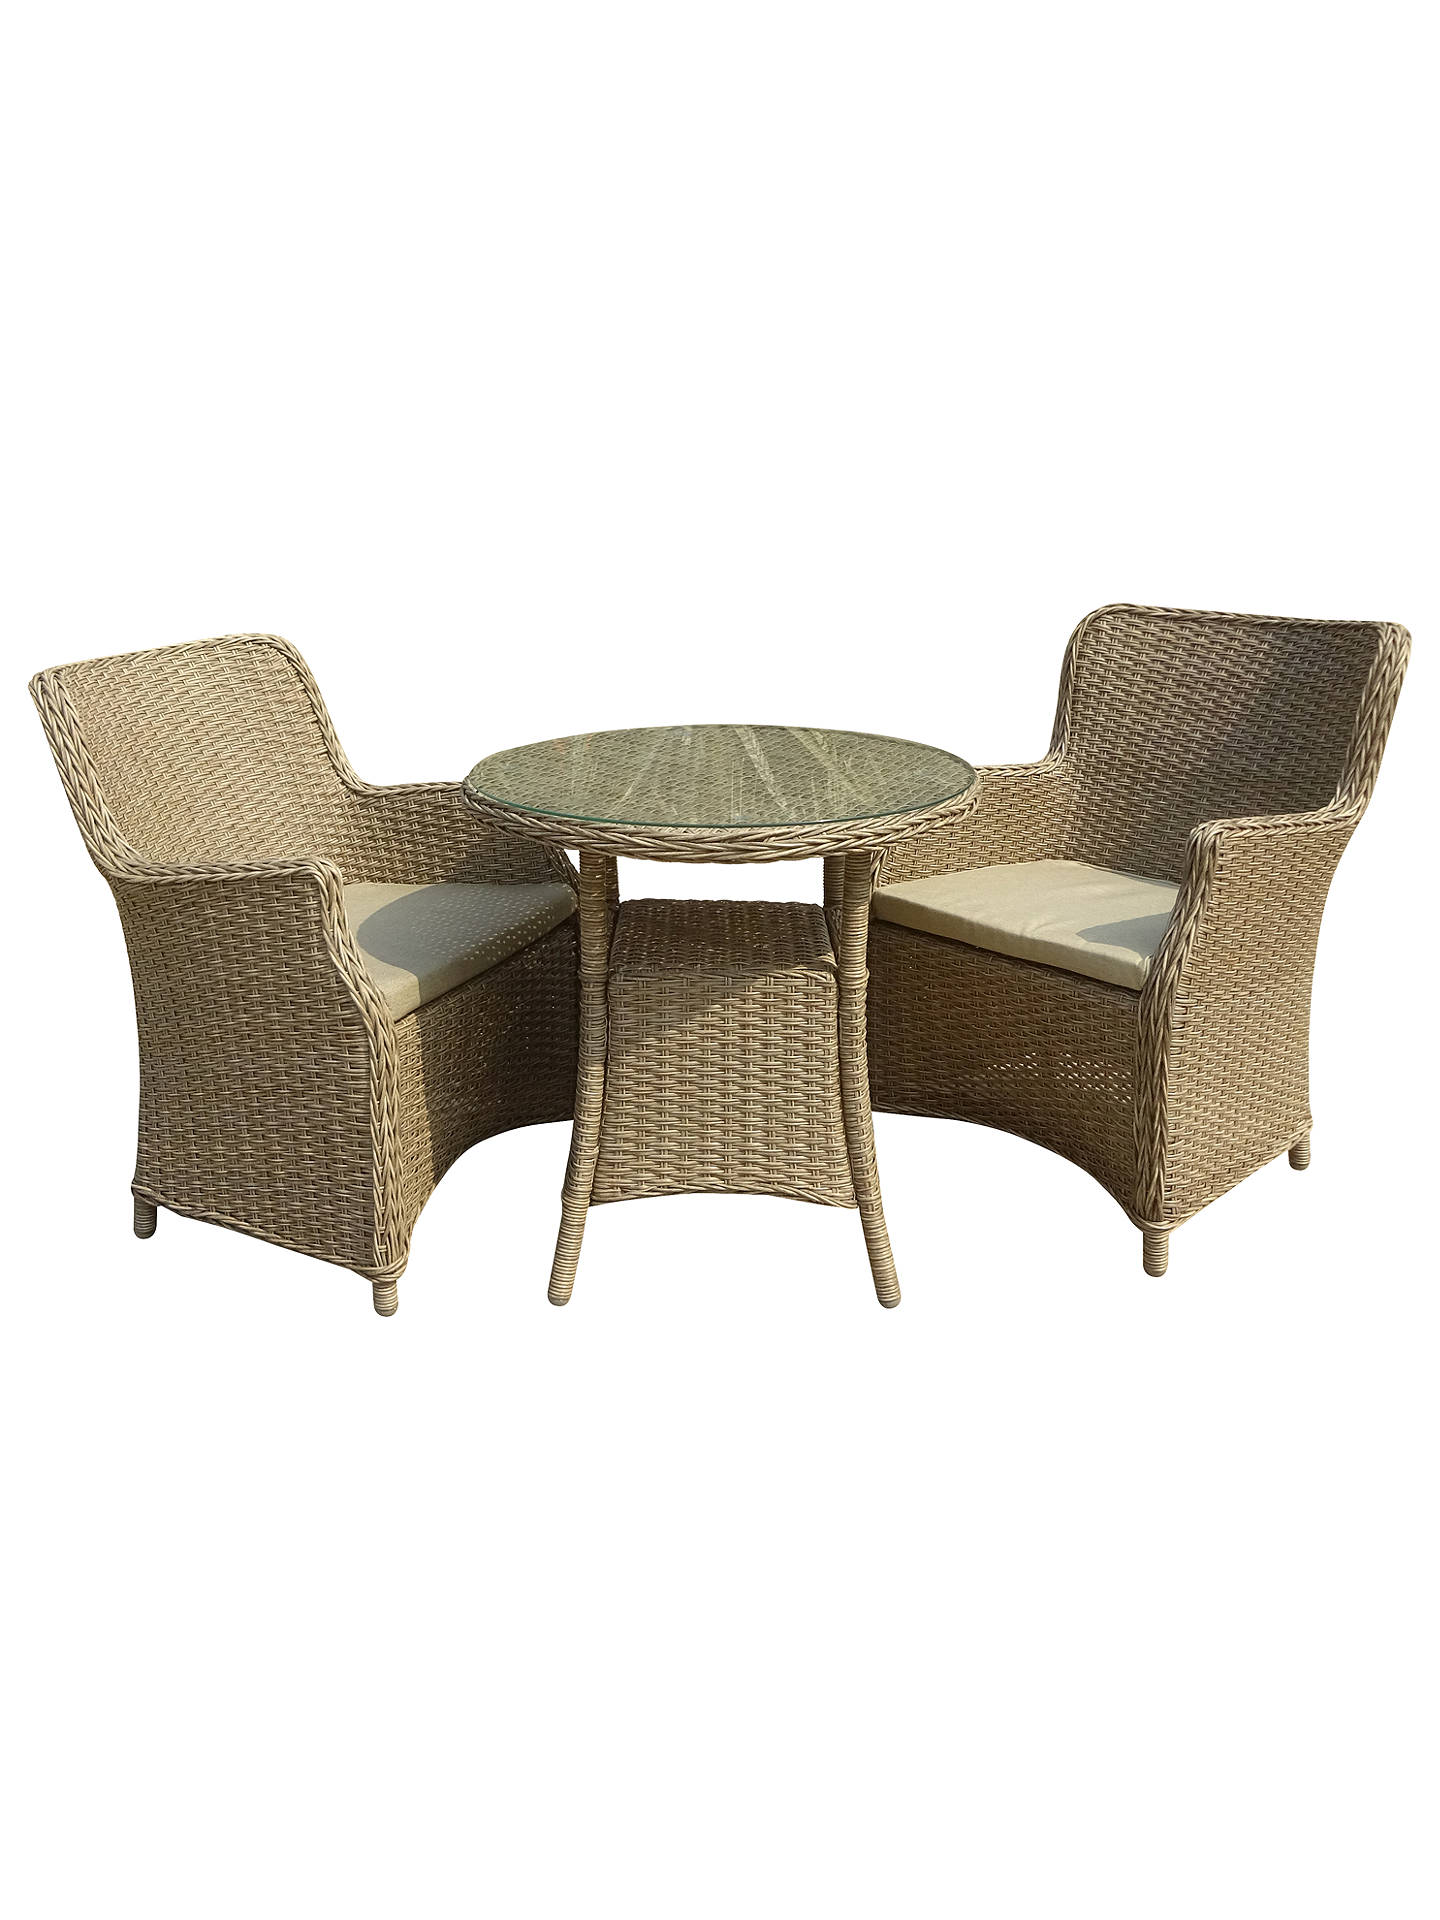 Lg Outdoor Saigon 2 Seater Garden Bistro Table And Chairs Set